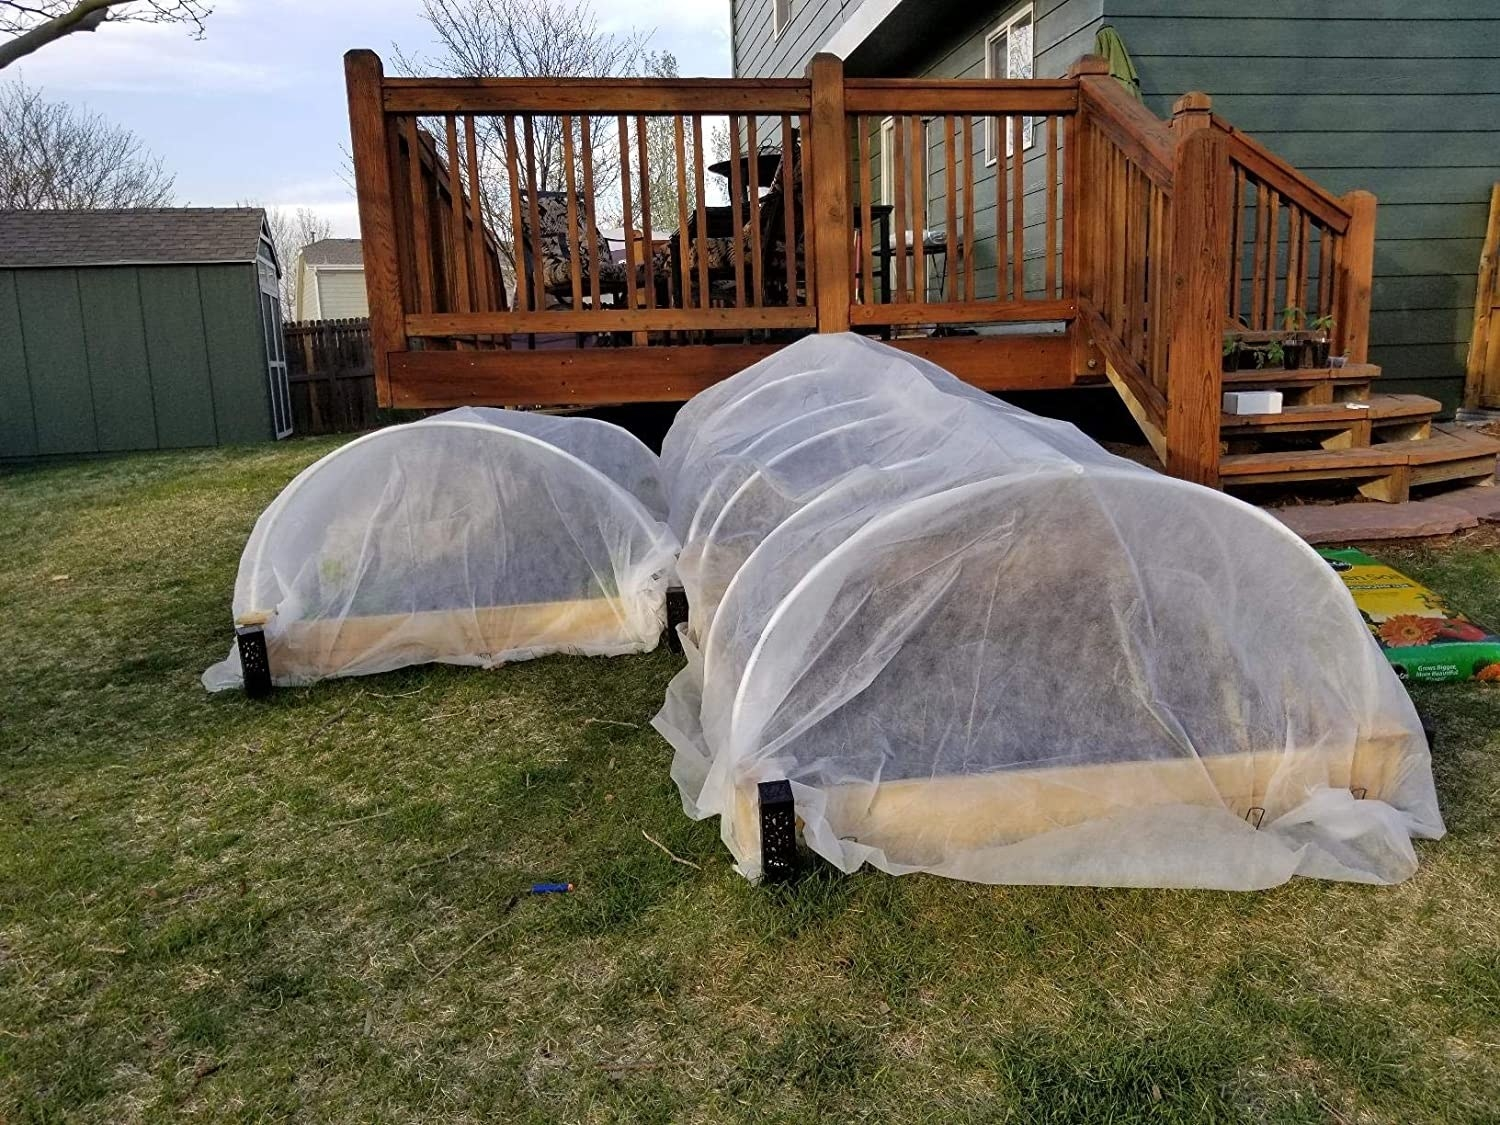 reviewer pier of the net-like covers over long raised garden beds